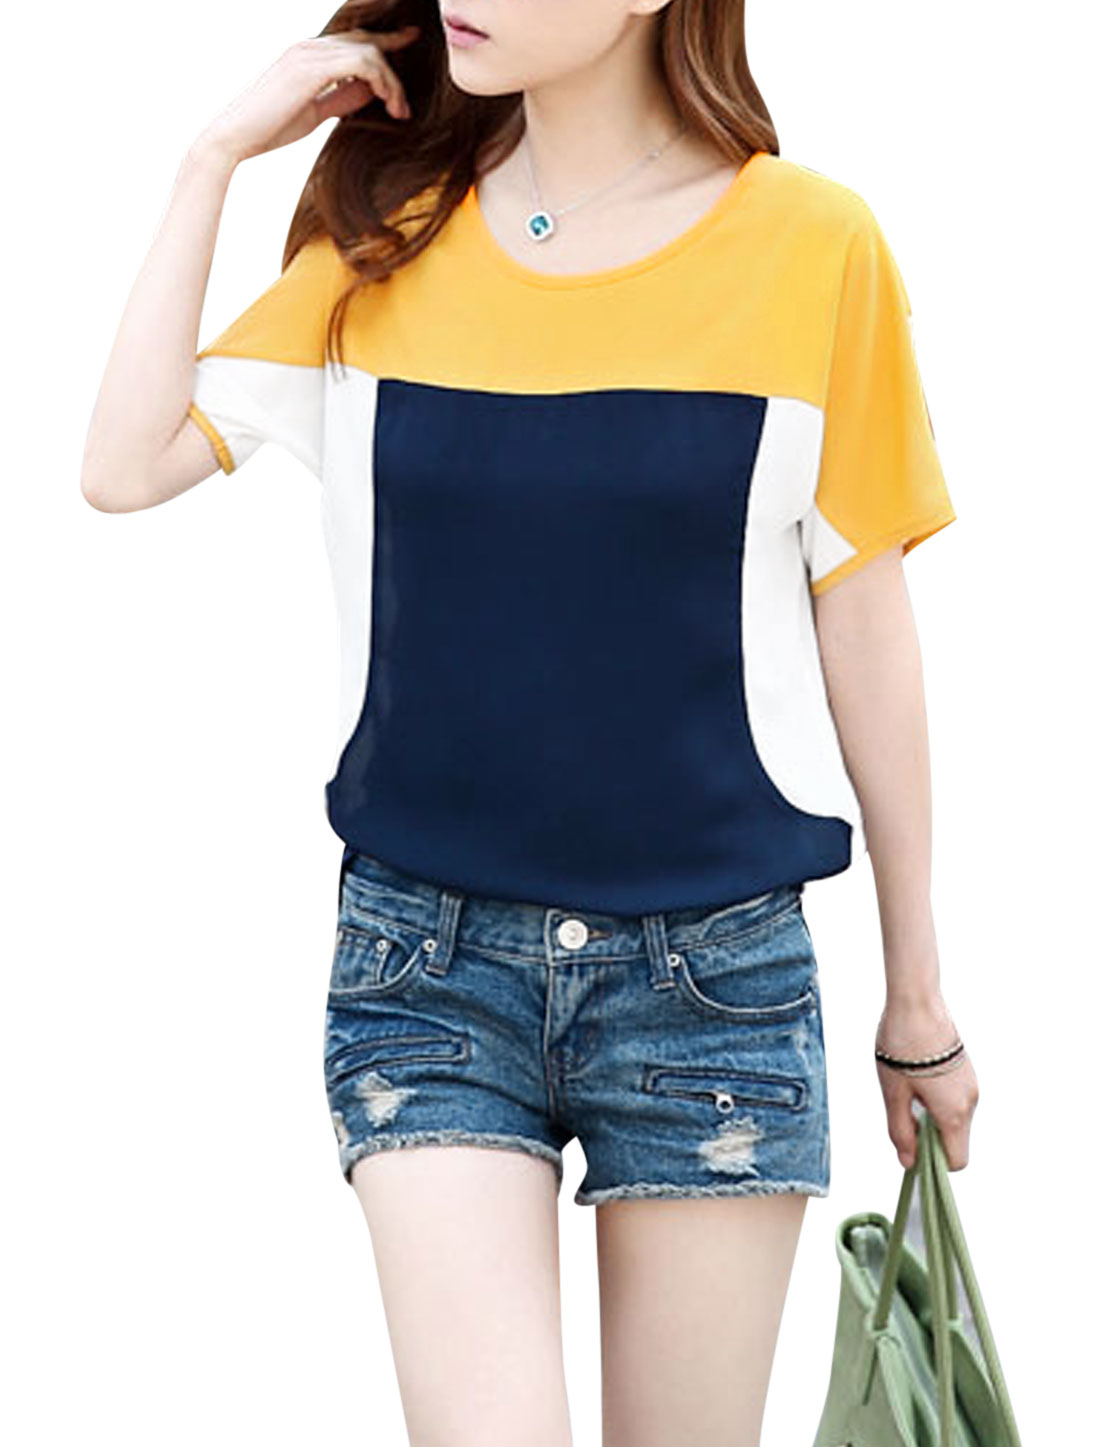 Lady's Round Neck Color Block Short Sleeve Unlined Chiffon Top Navy Blue S